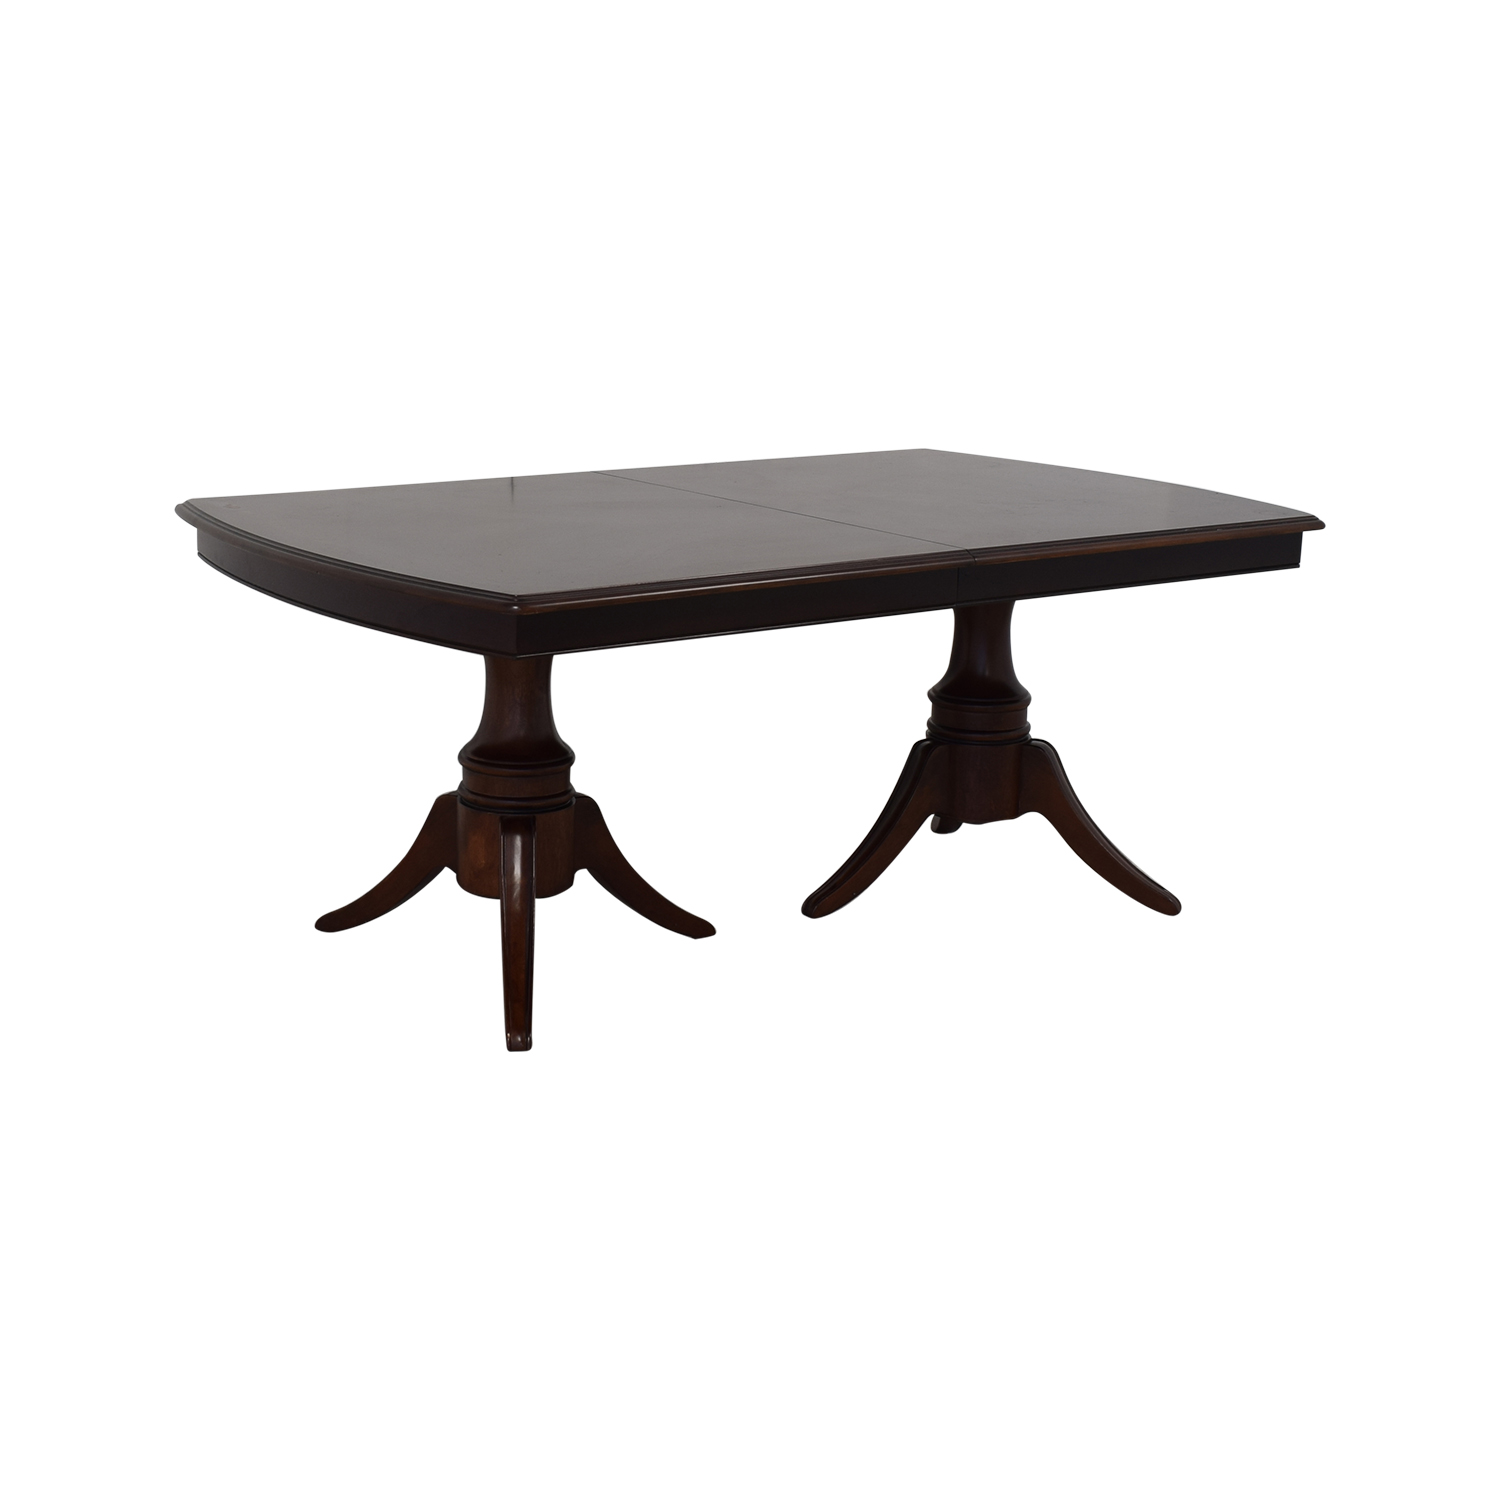 Raymour & Flanigan Raymour & Flanigan Dining Table Brown